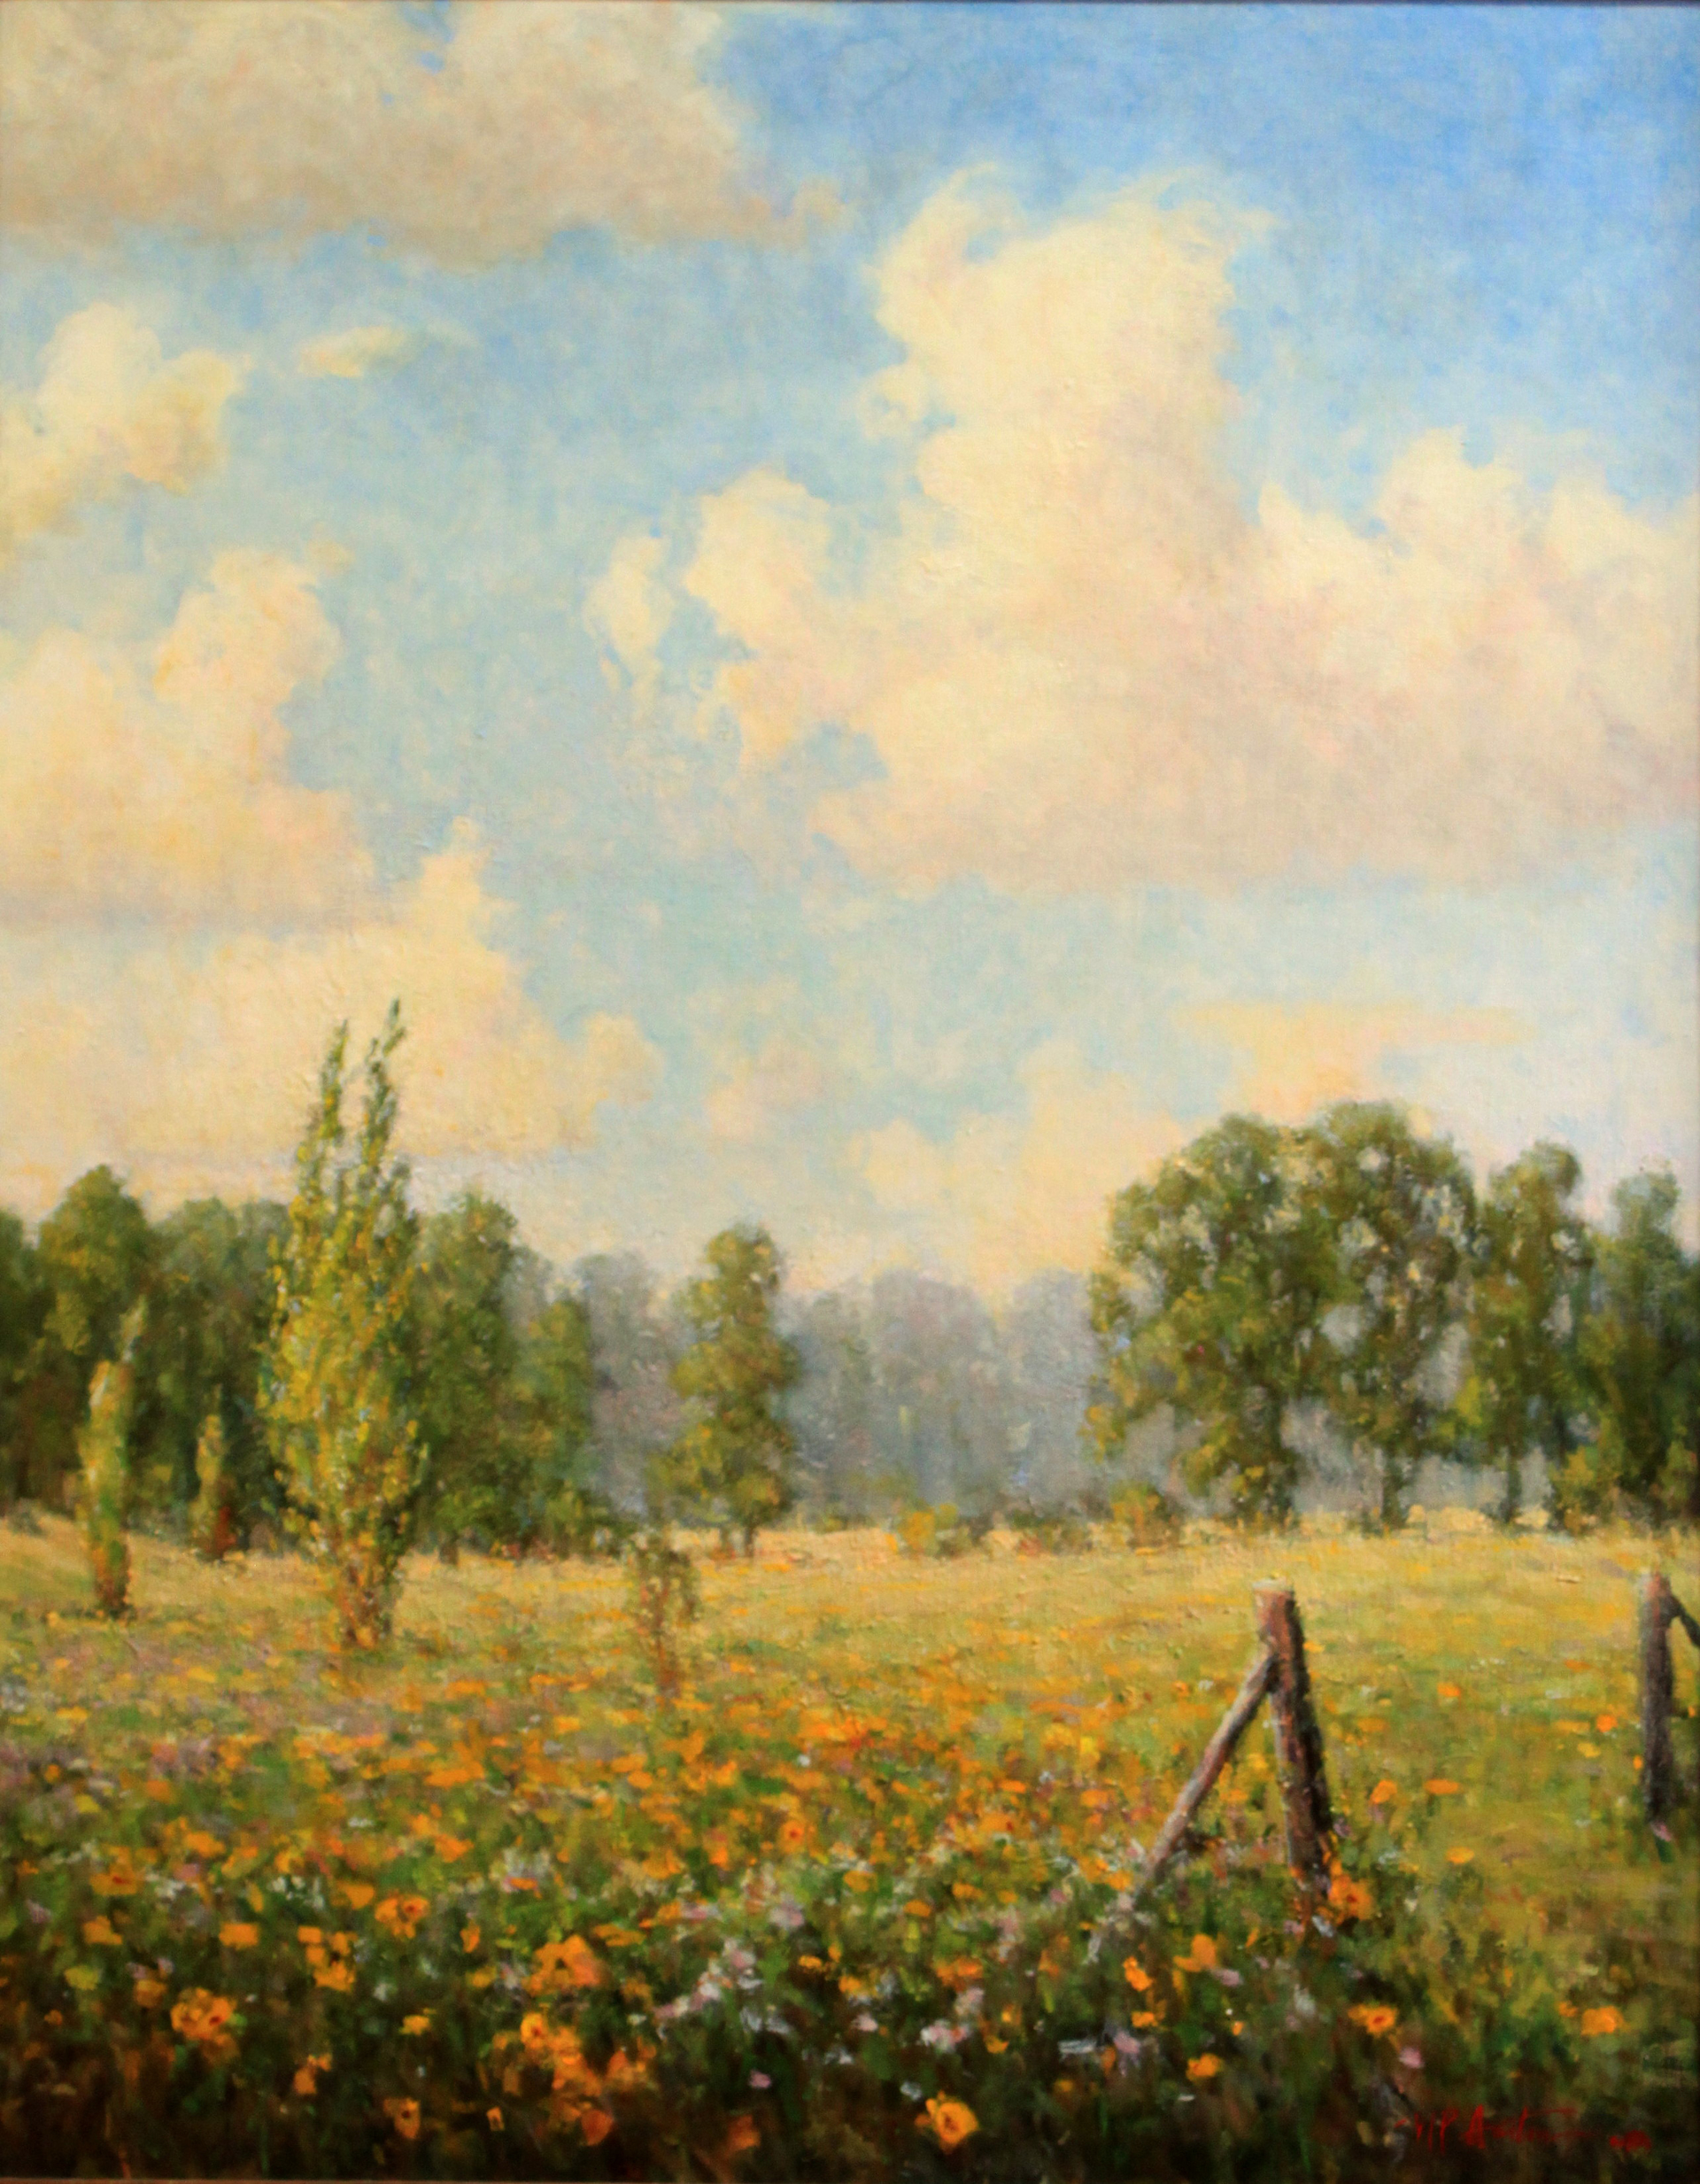 Summers on the Meadow by Perry Austin